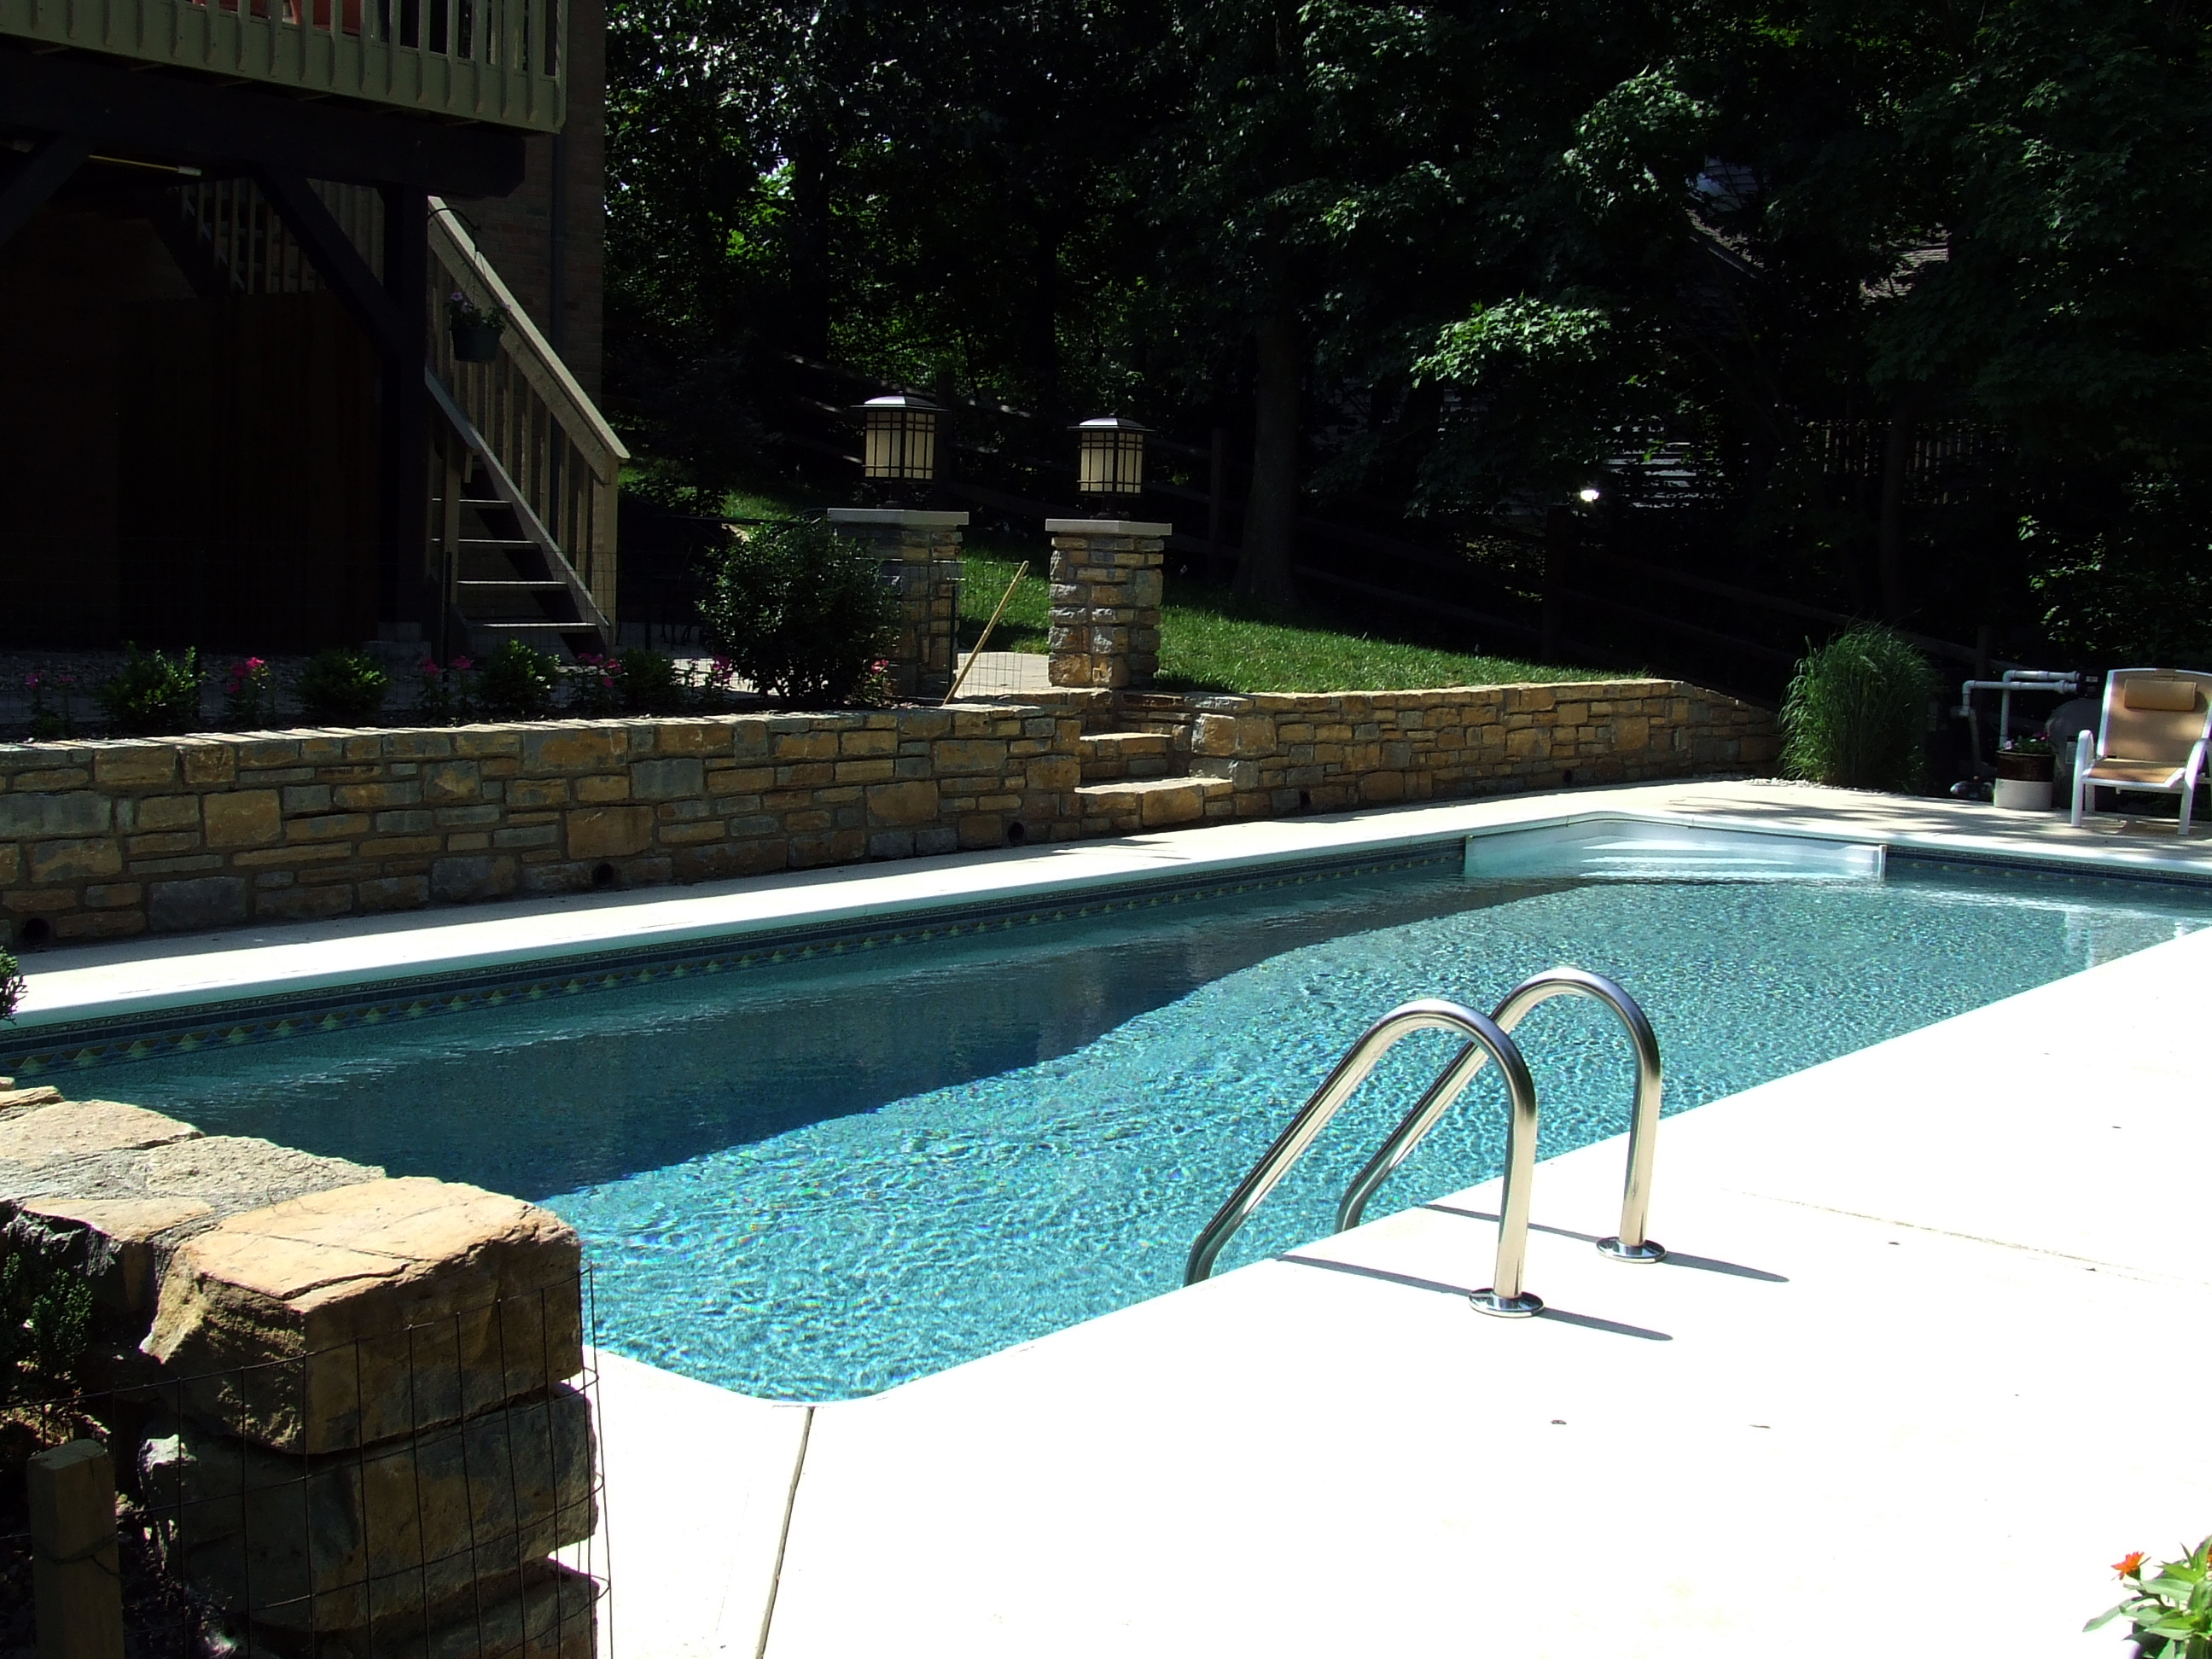 SunSpot Inground Pool Design - 107